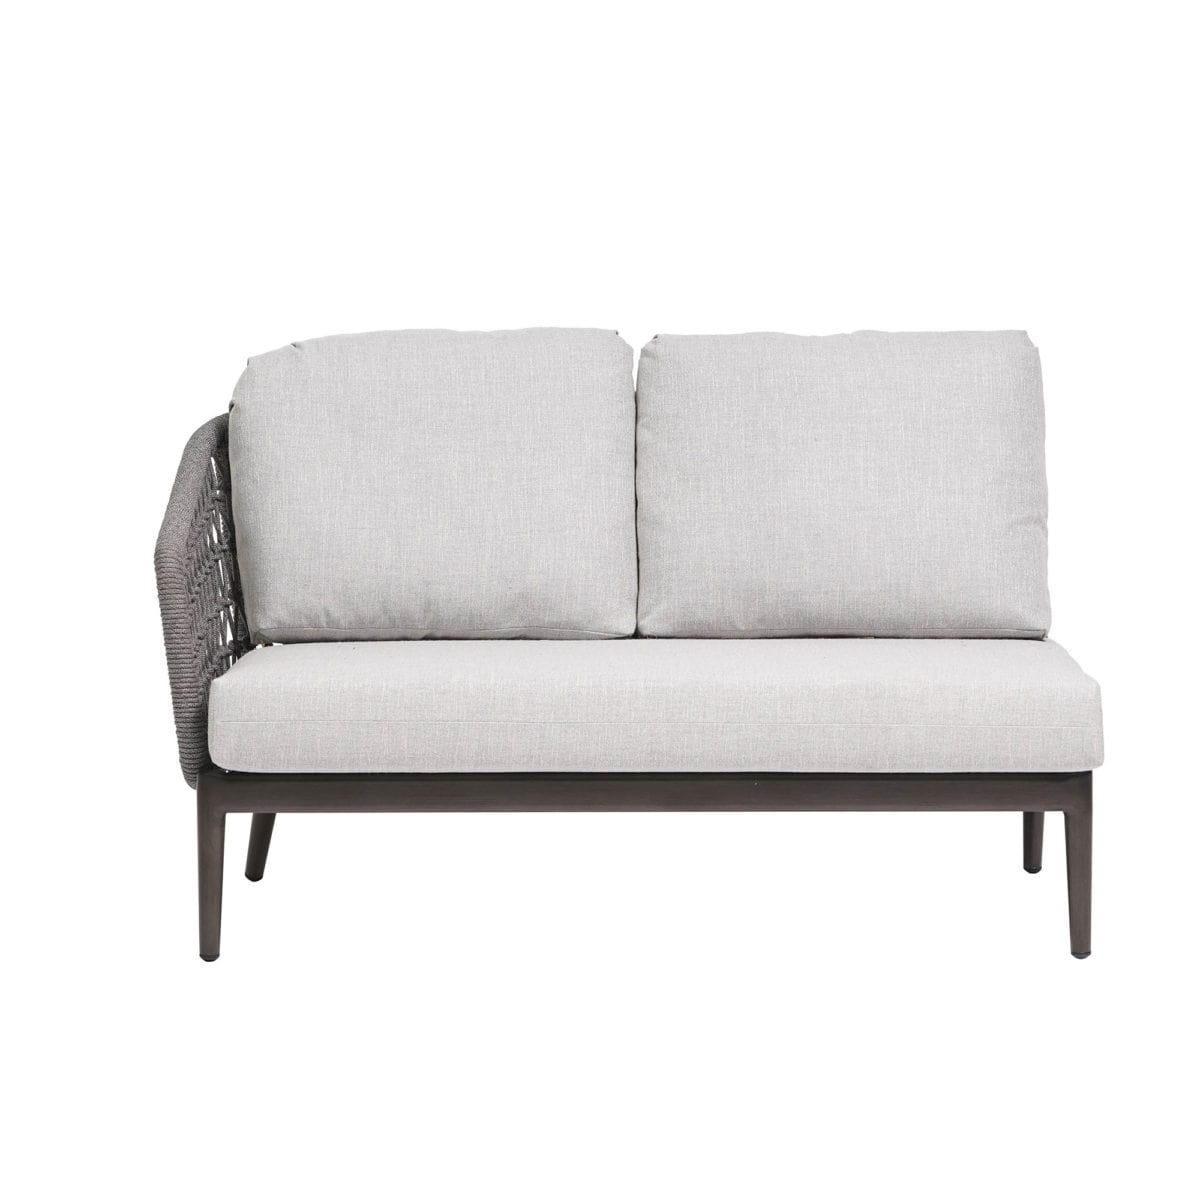 Ratana Sectional Poinciana 2-Seater Left Arm